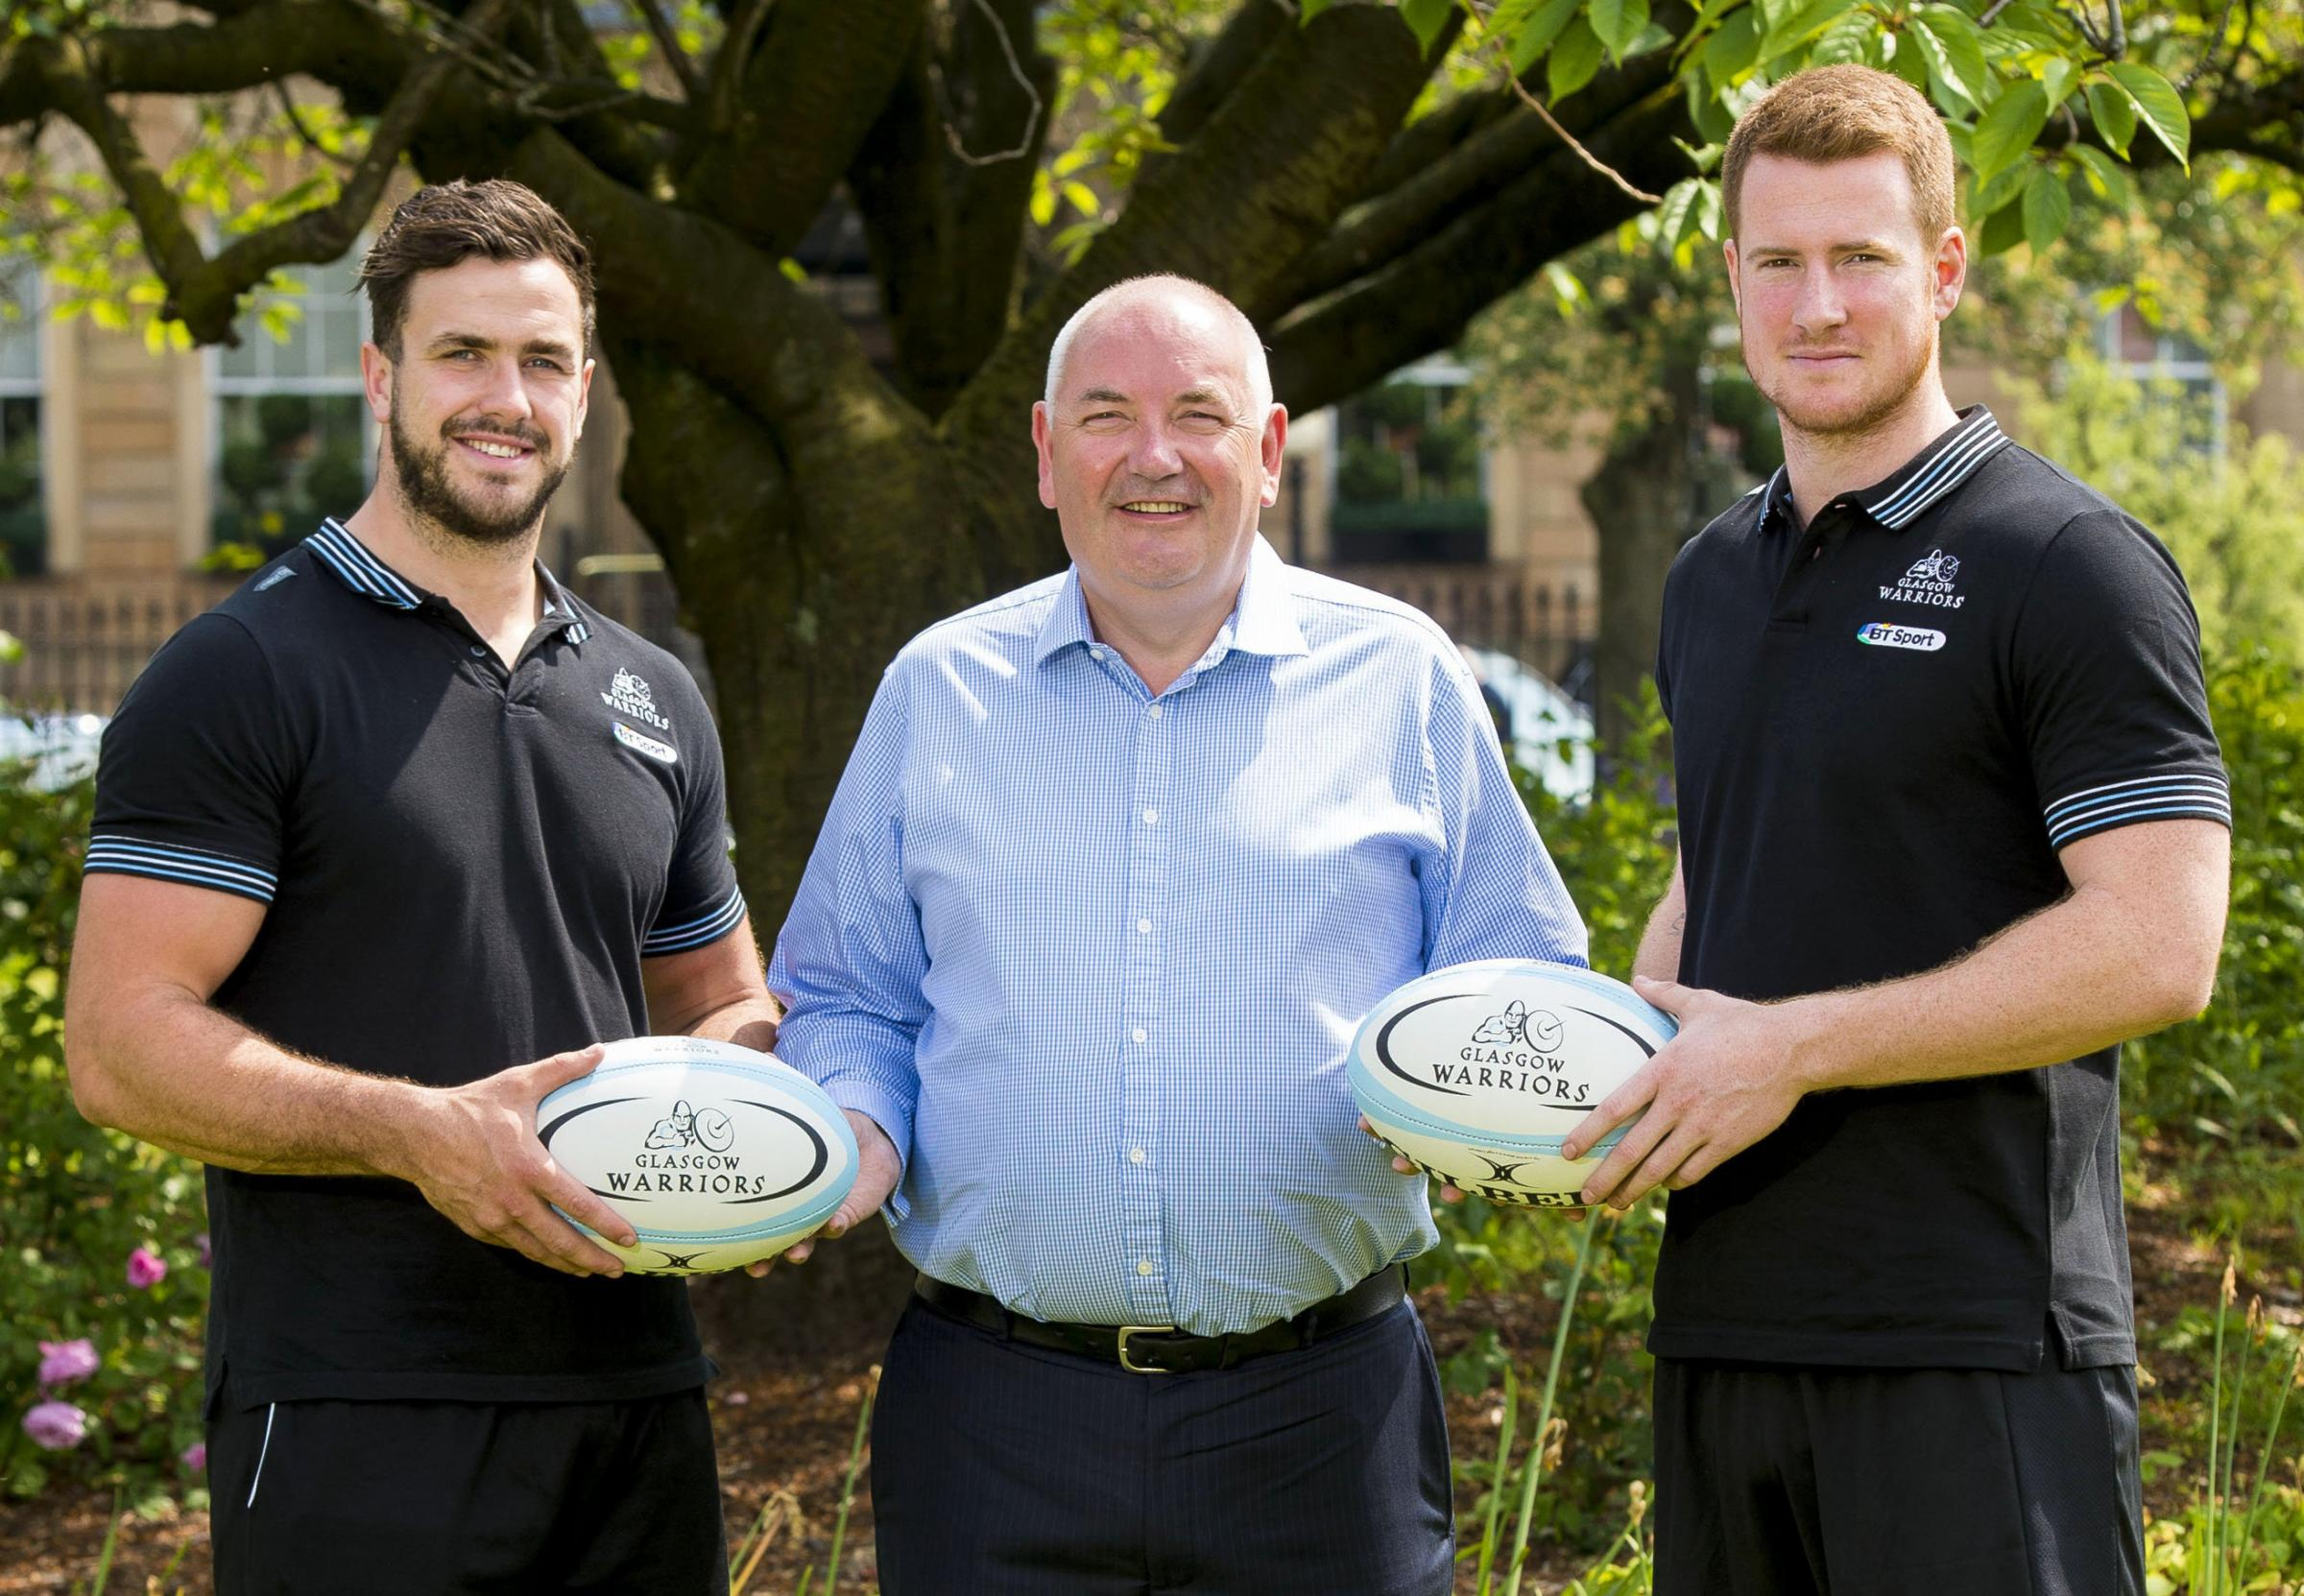 Warriors players Alex Dunbar, left, and Rory Clegg with Primestaff chief executive Danny McIntyre